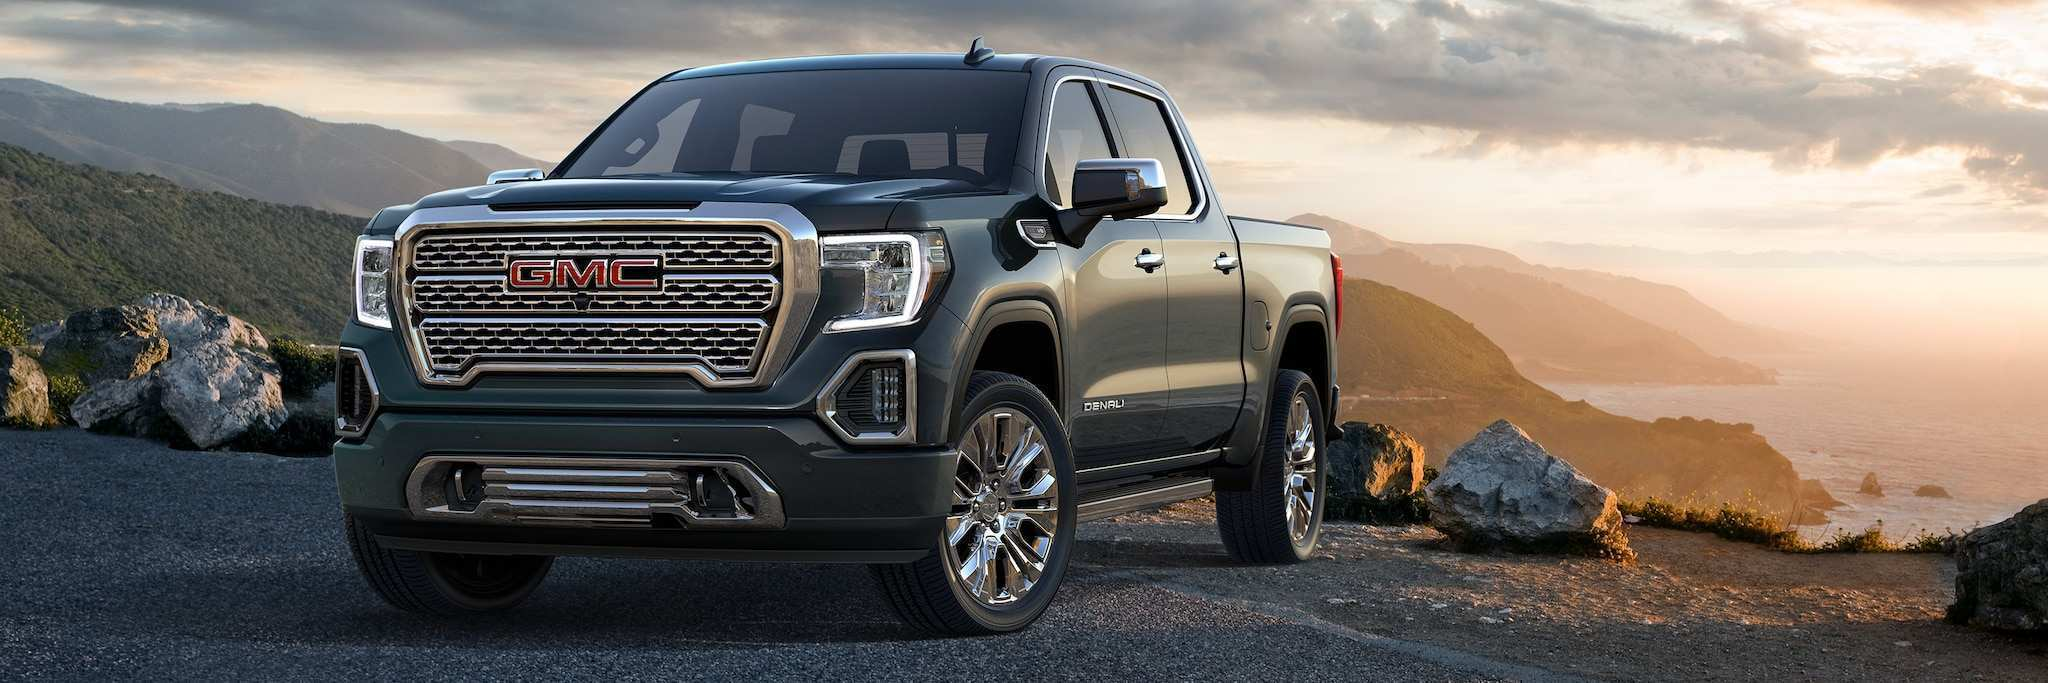 66 The 2019 Gmc Engine Options Release Date